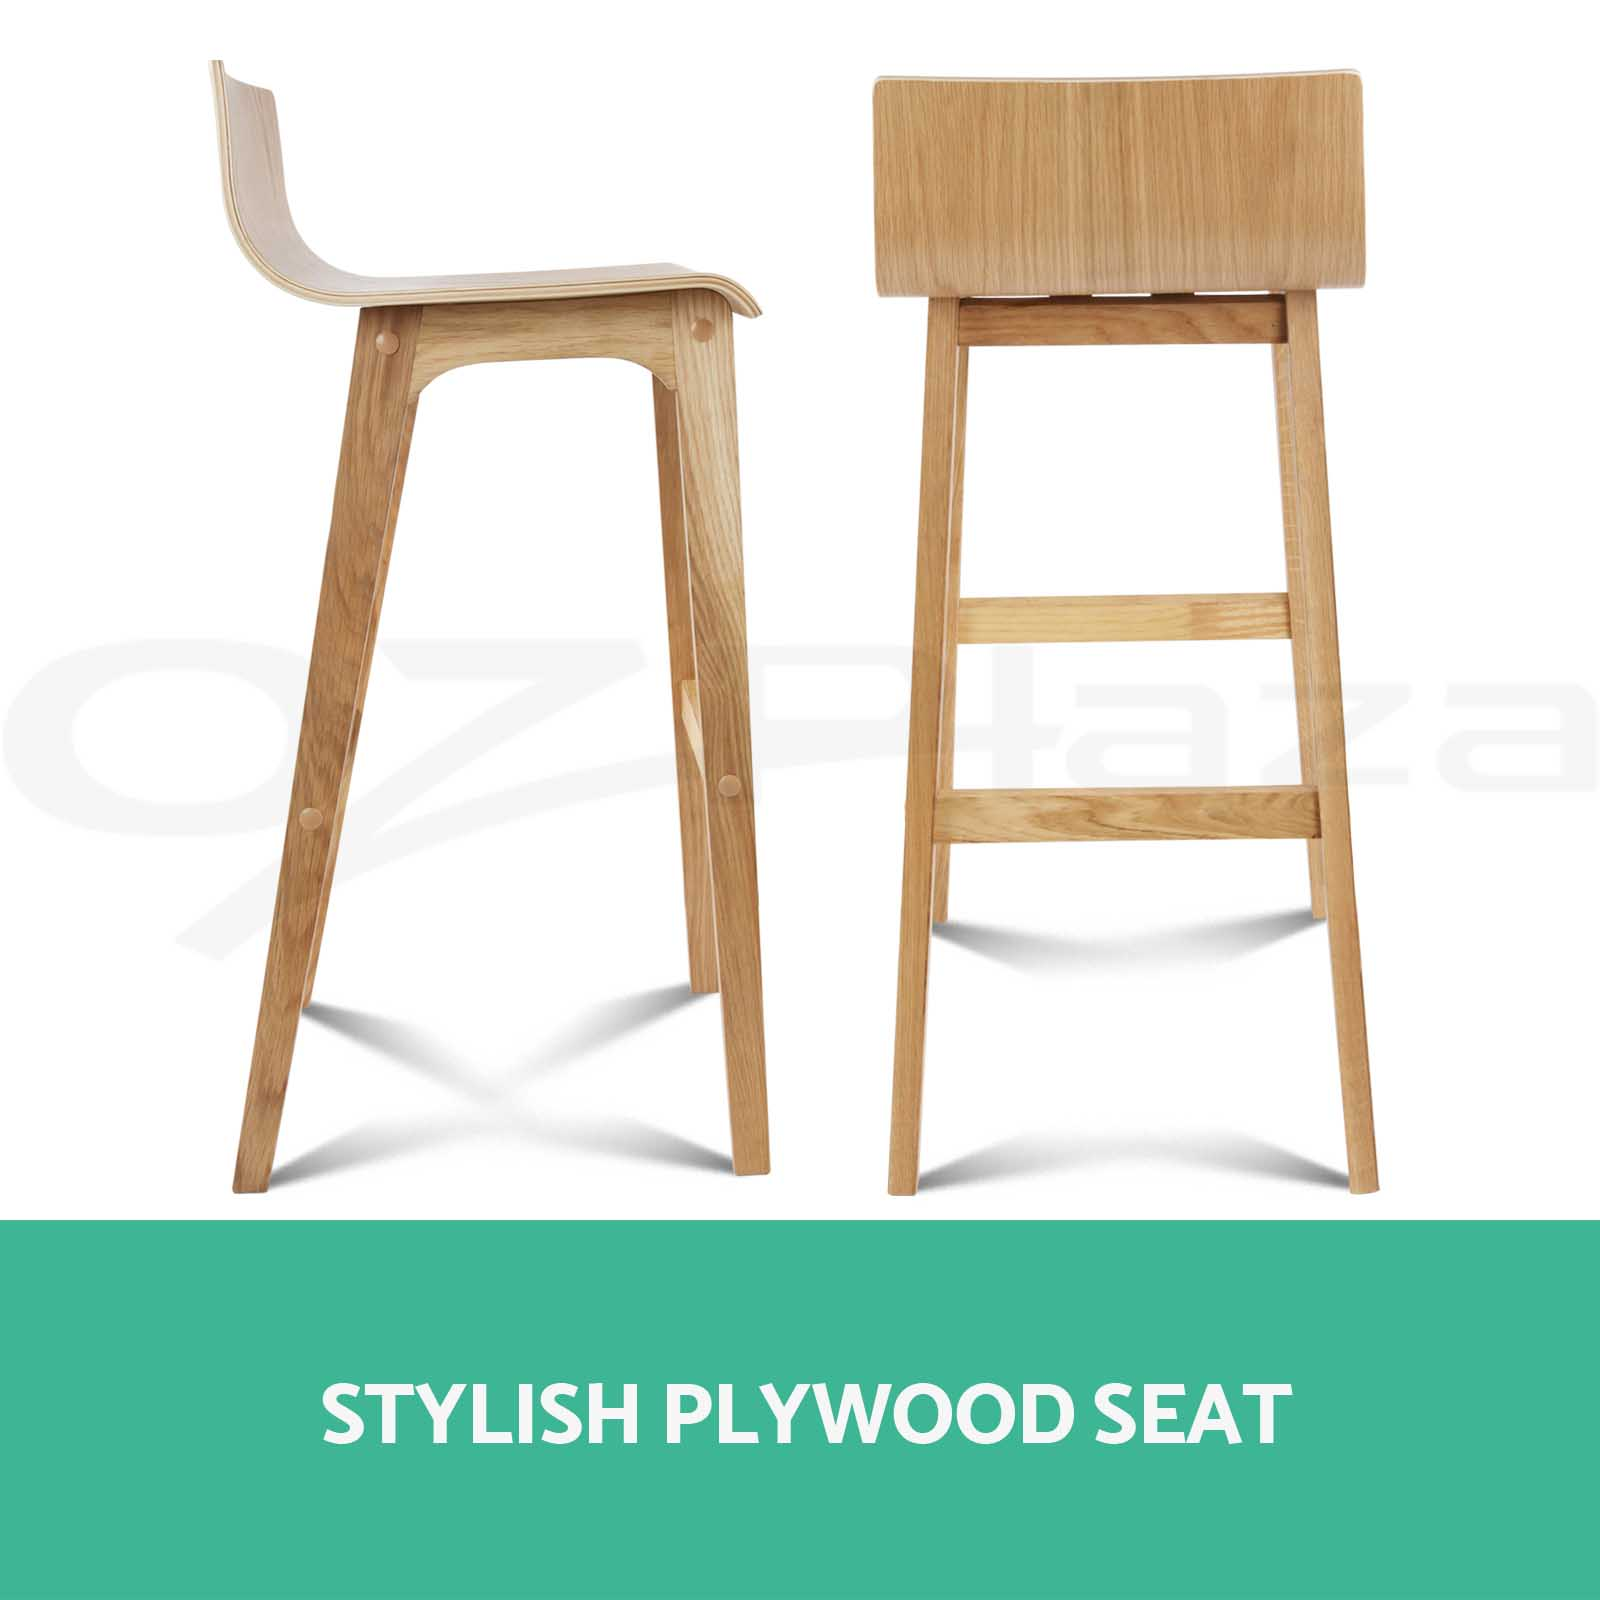 Marvelous photograph of 2x Oak Wood Bar Stool Wooden Dining Chair Kitchen Side Plywood Natural  with #33987C color and 1600x1600 pixels